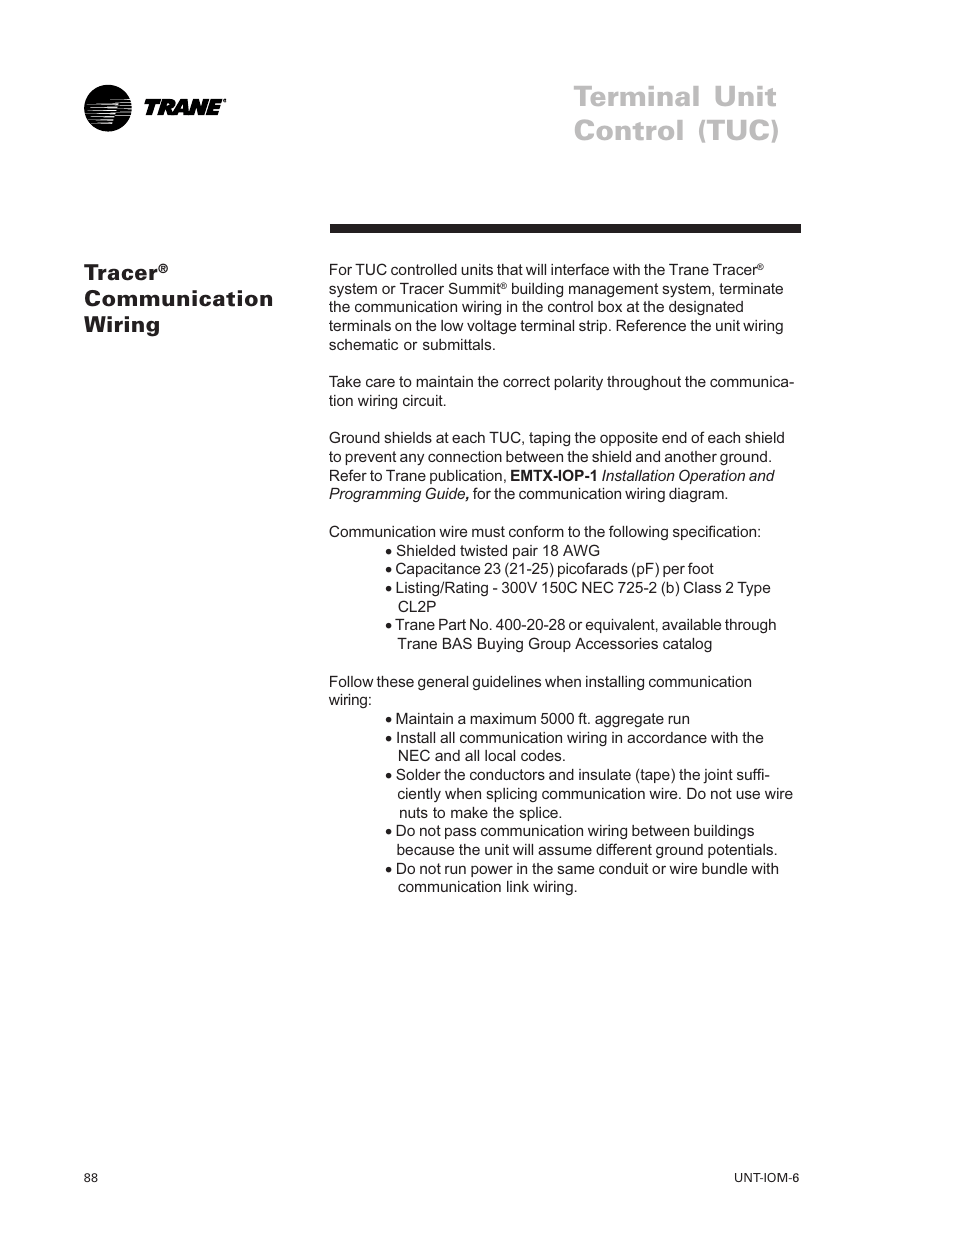 medium resolution of tracer communication wiring terminal unit control tuc tracer trane lo user manual page 88 136